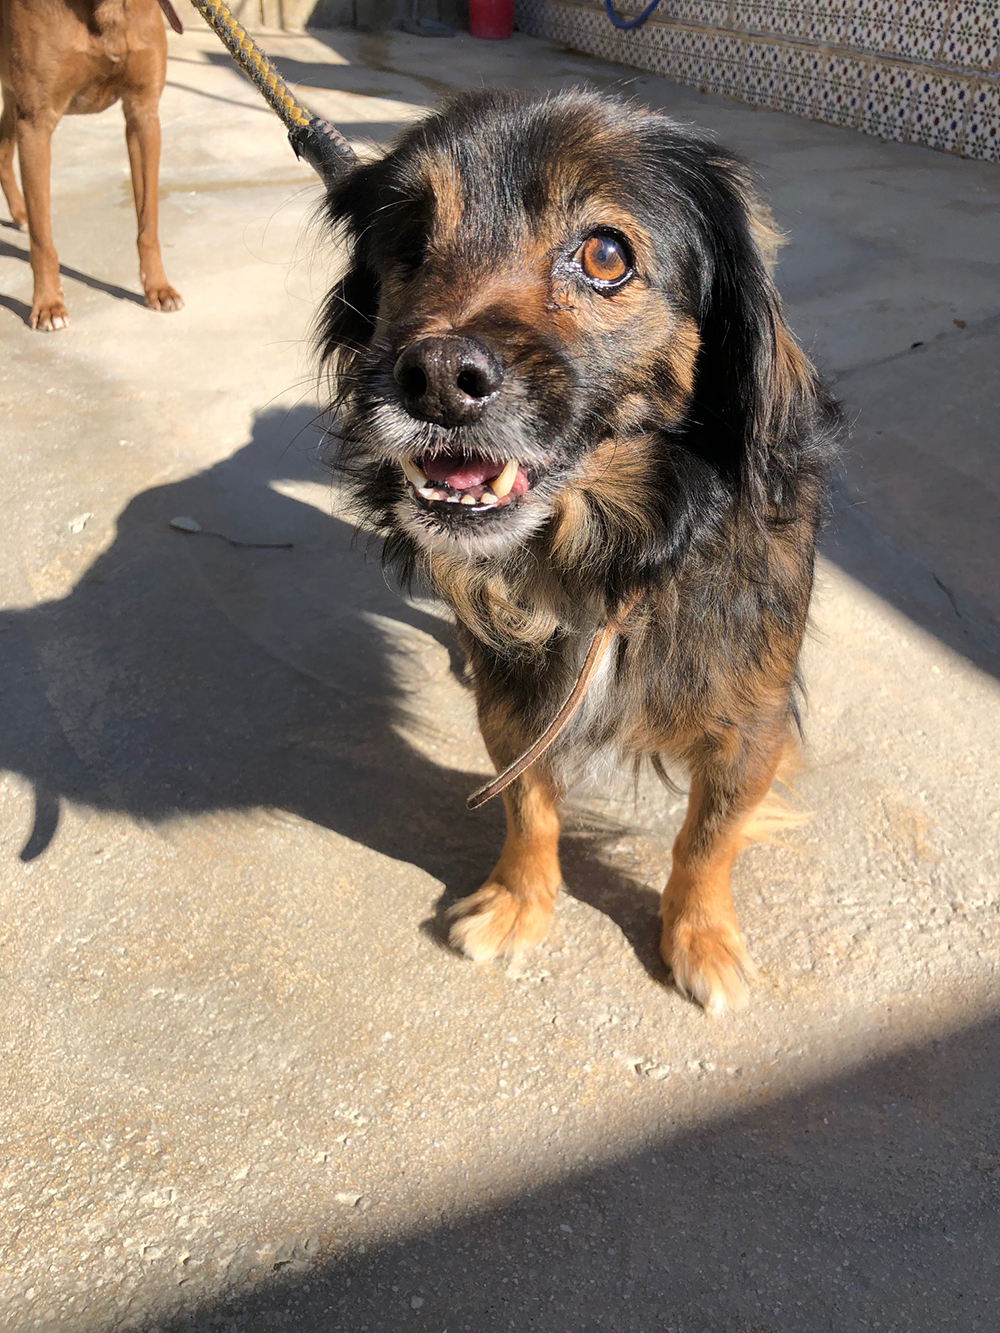 Leo is the smallest of the three, but has the biggest personality. At seven years old, he's missing an eye and part of an ear, and has two bullets lodged in his body. A real force of nature!